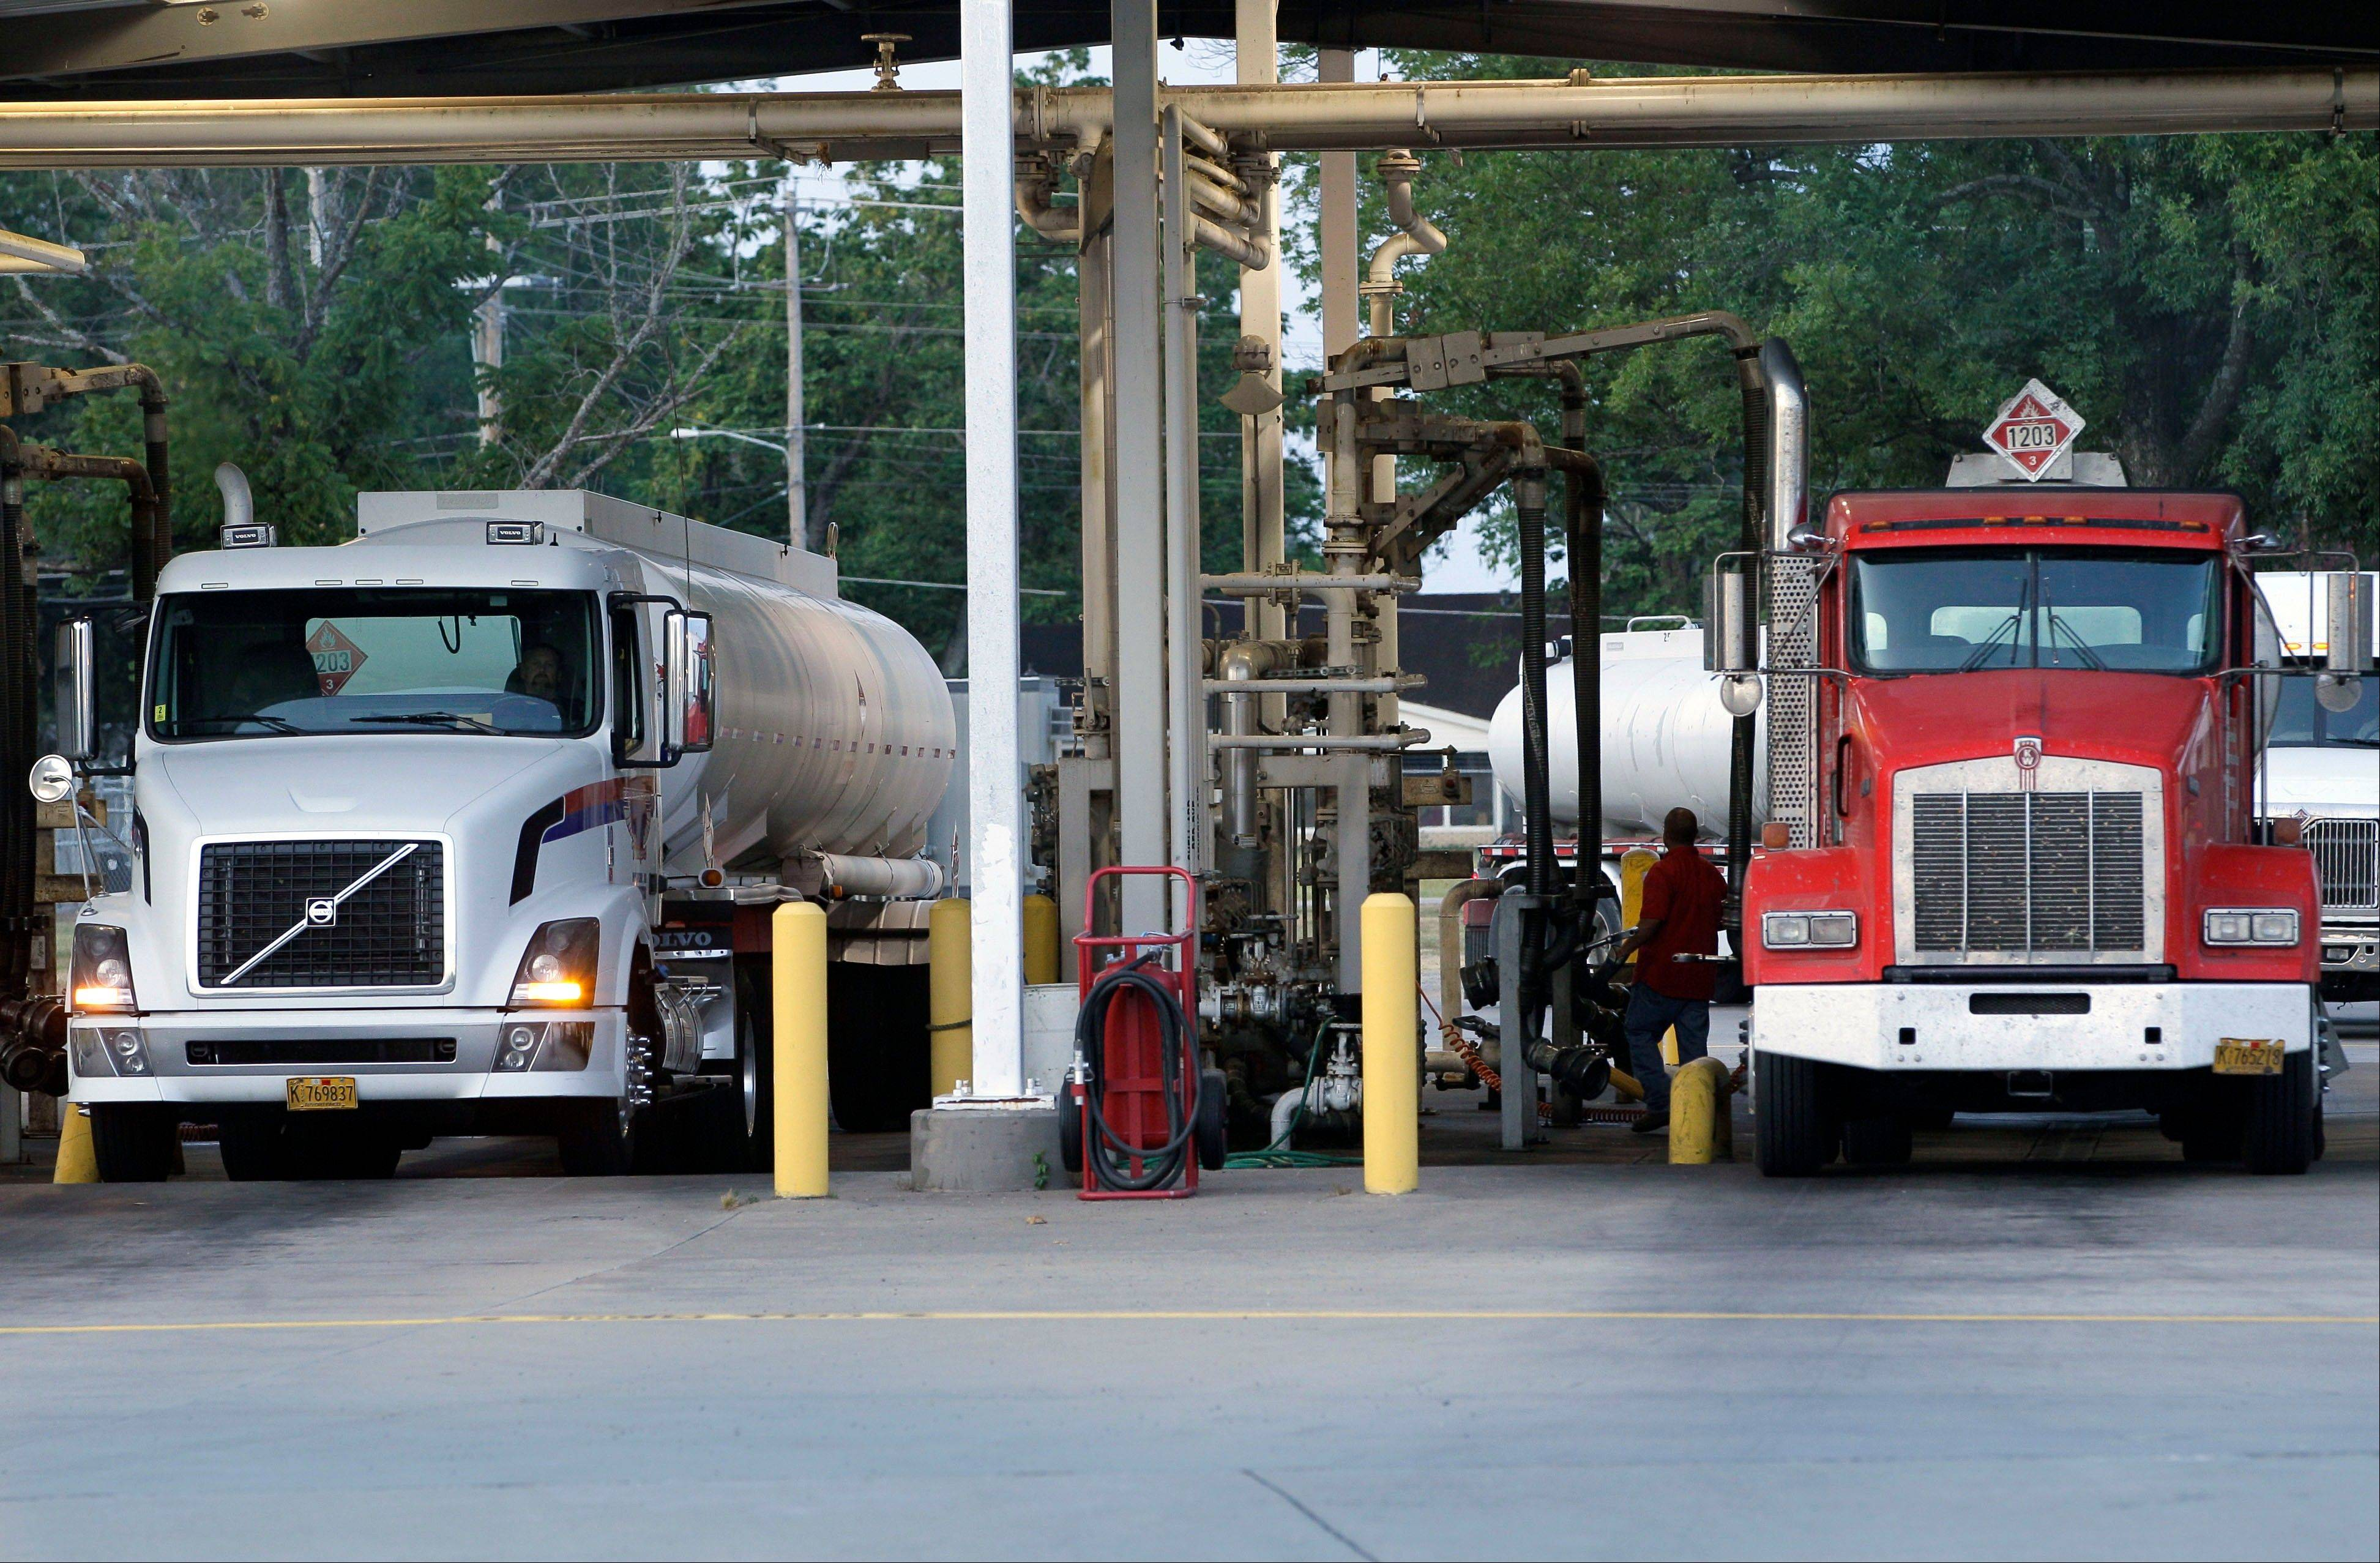 Fuel tanker trucks arrive at a North Little Rock, Ark., petroleum distributorship before making daily deliveries to gasoline retailers.Oil slipped slightly to almost $91 a barrel Monday, but managed to hold on to most of the big gains from the previous session after the U.S. reported better-than-expected jobs growth.